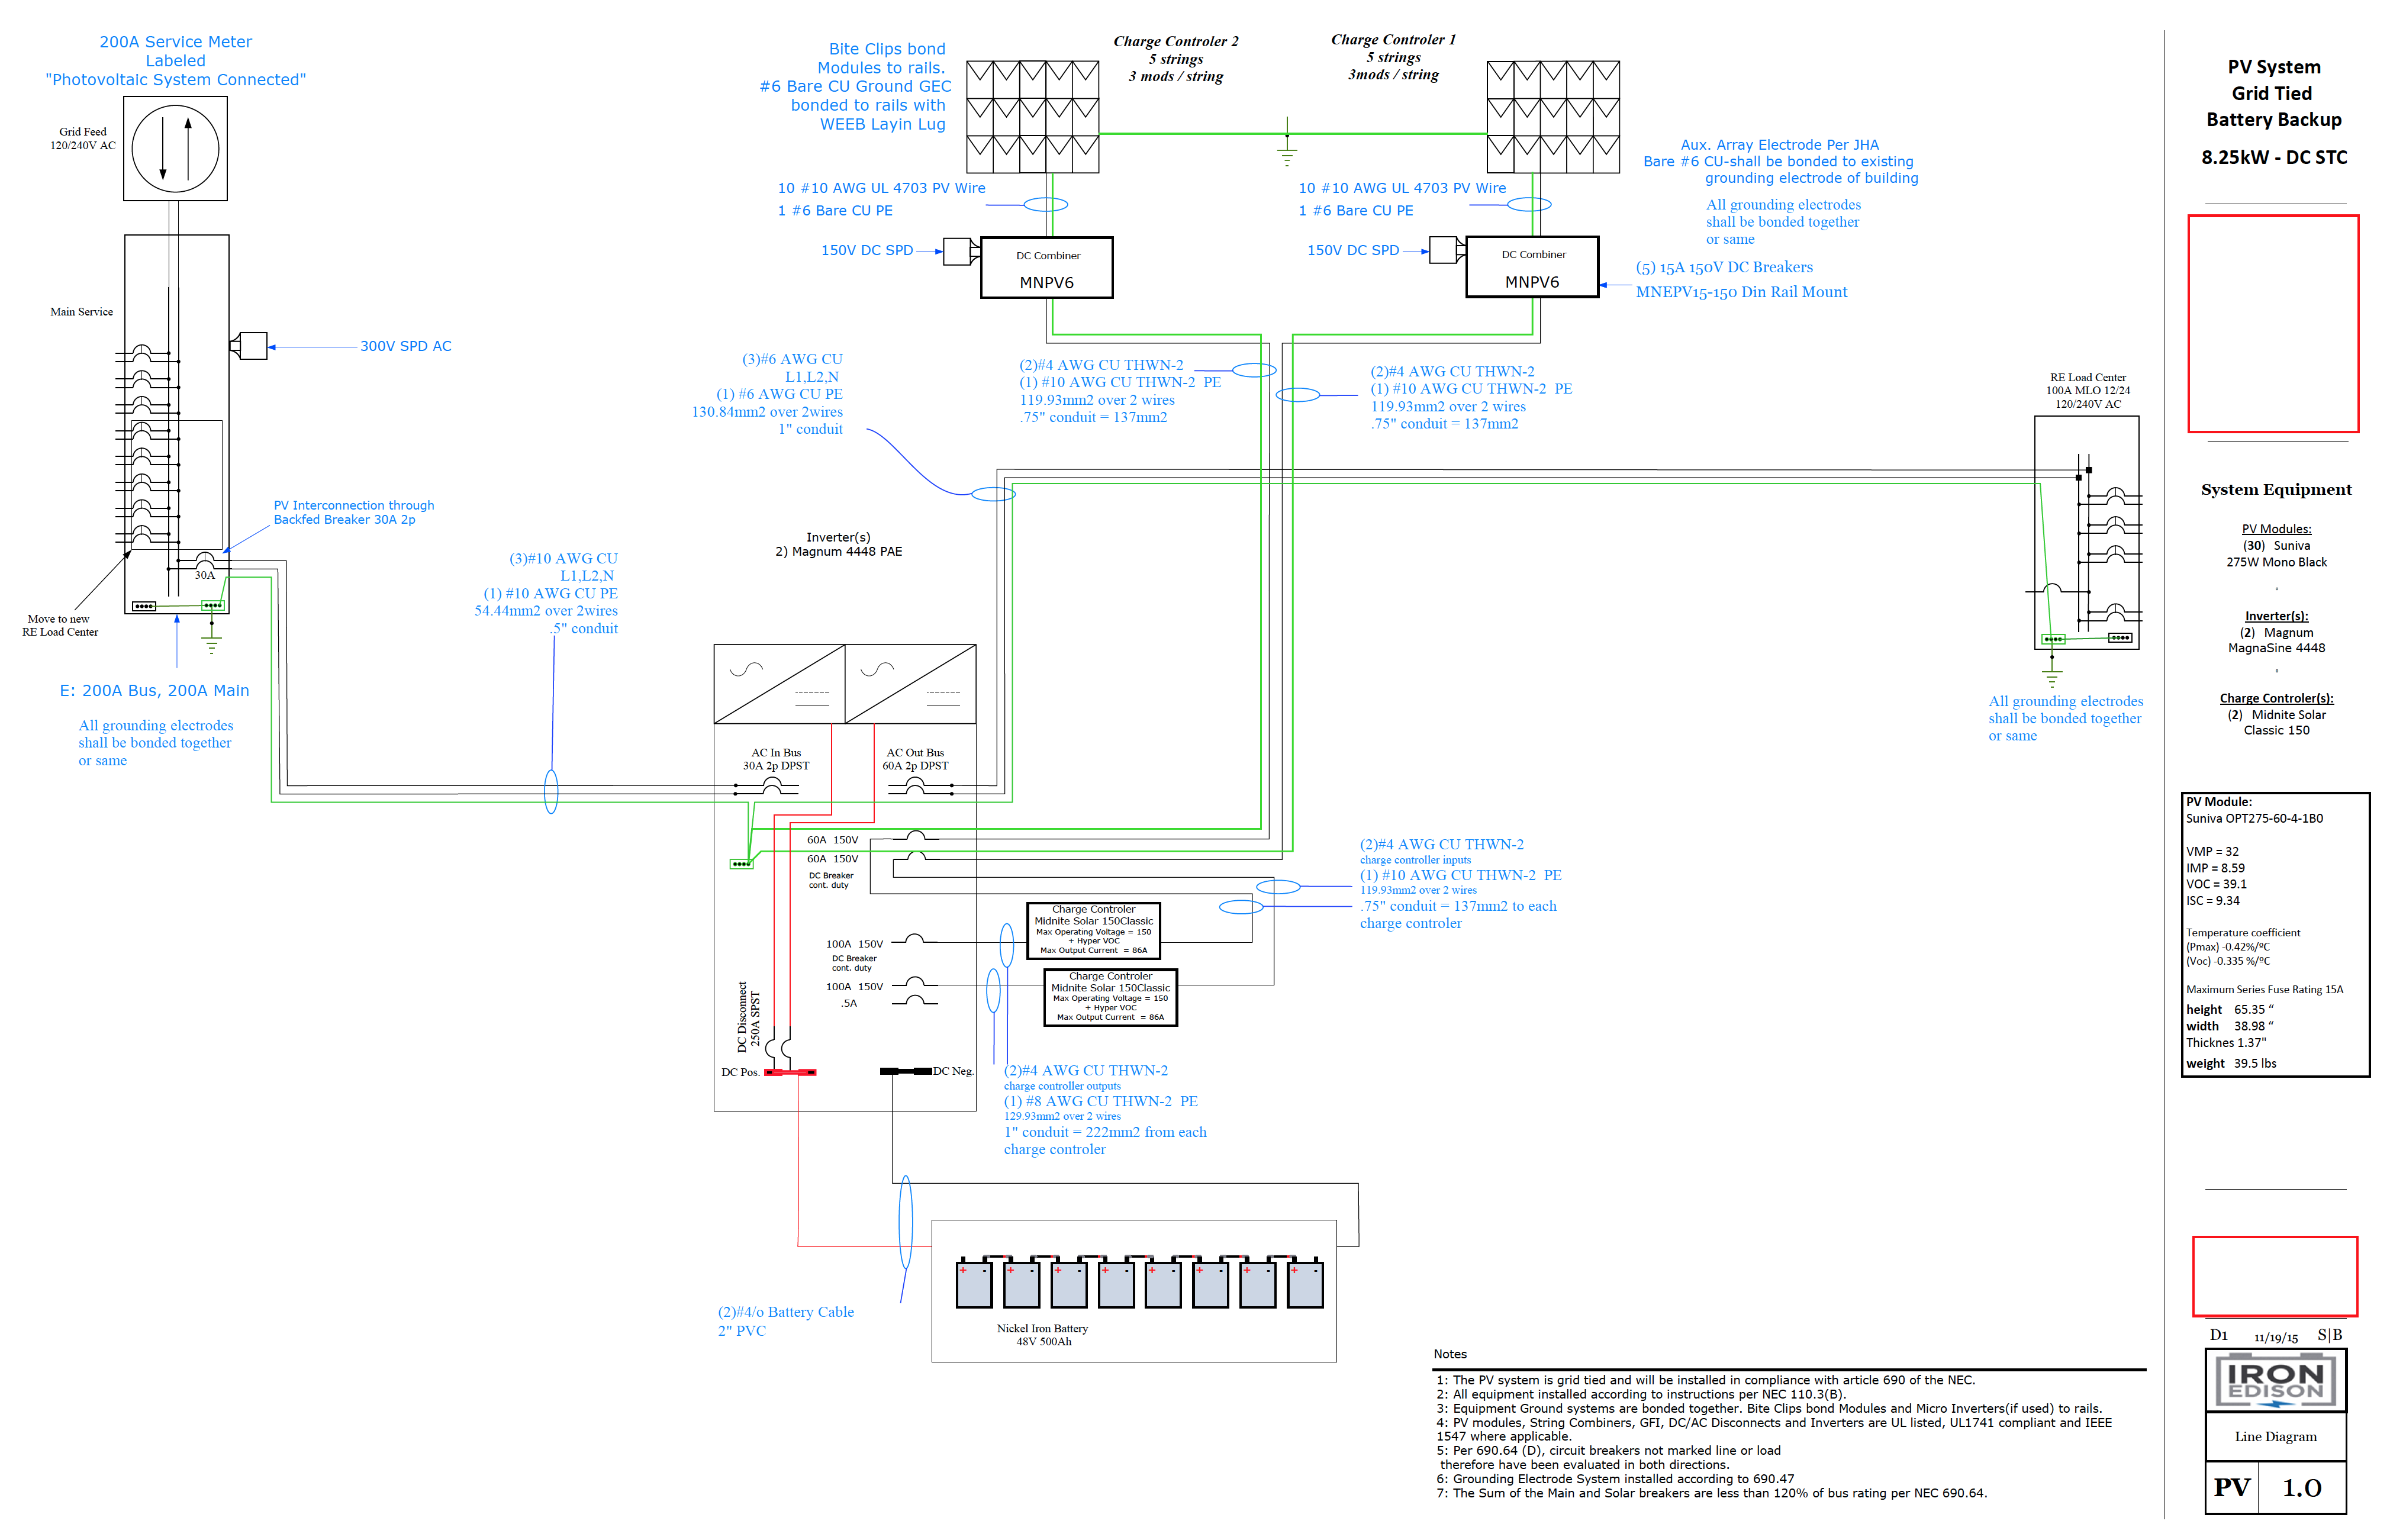 An Exle System Diagram From Iron Edison's Engineer This Is A. An Exle System Diagram From Iron Edison's Engineer This Is A Grid Zero. Wiring. Edison System Wiring Diagram At Scoala.co